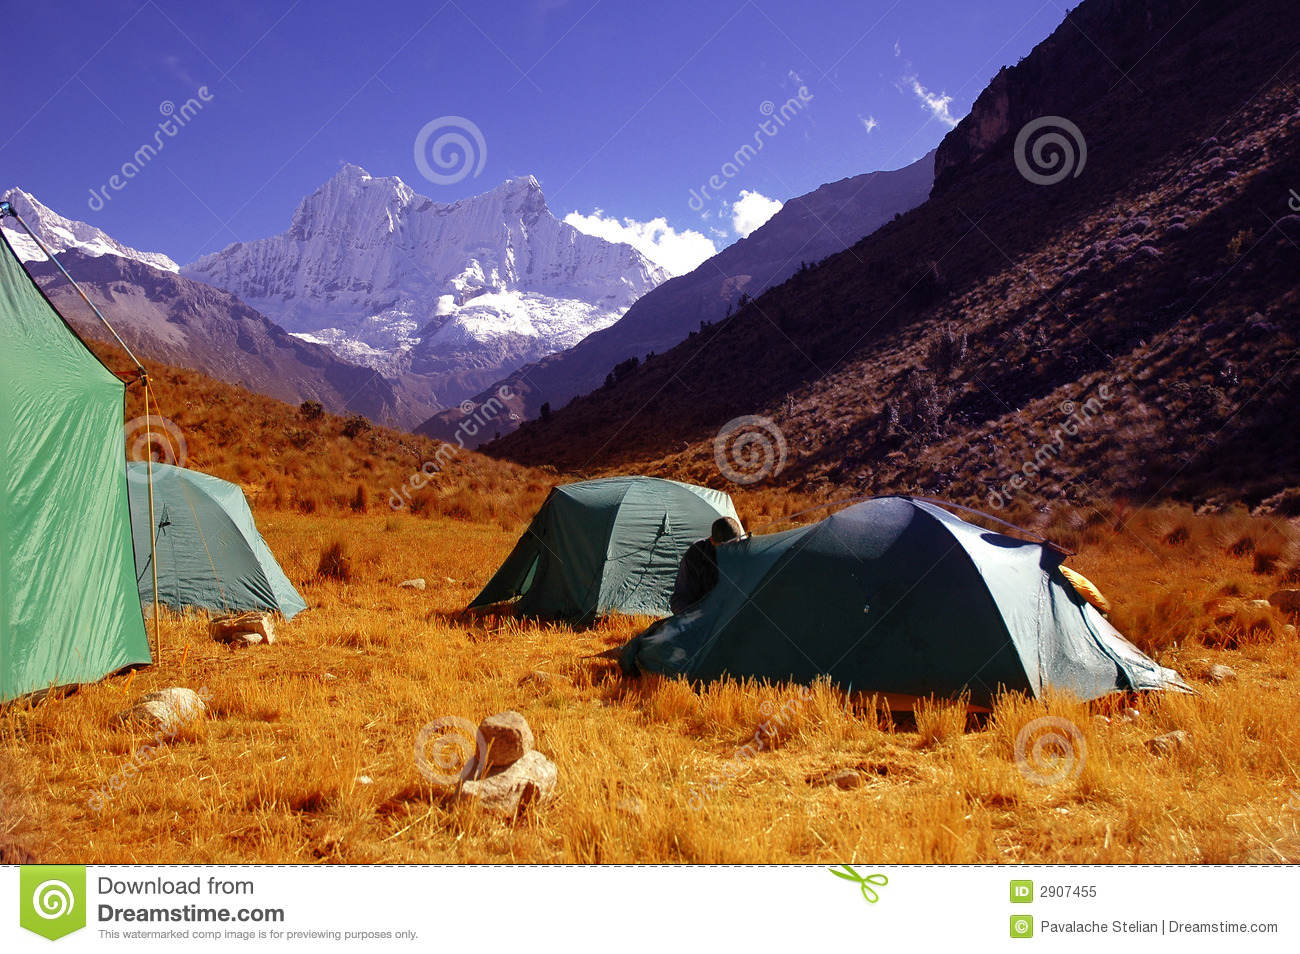 Royalty Free Stock Photo: Camping Site: www.dreamstime.com/royalty-free-stock-photo-camping-site-image2907455